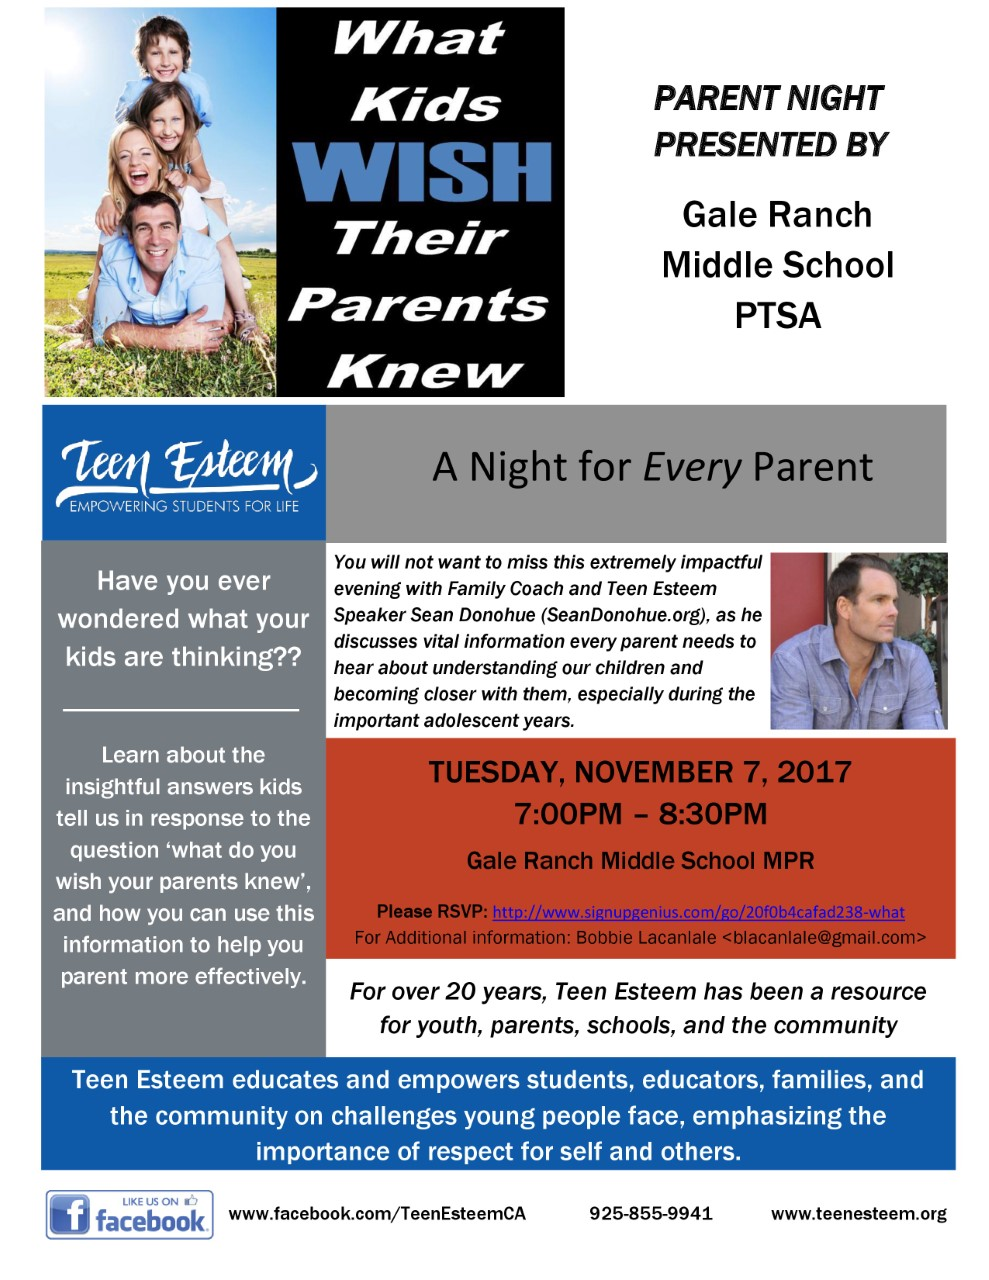 Flyer for Parent Night